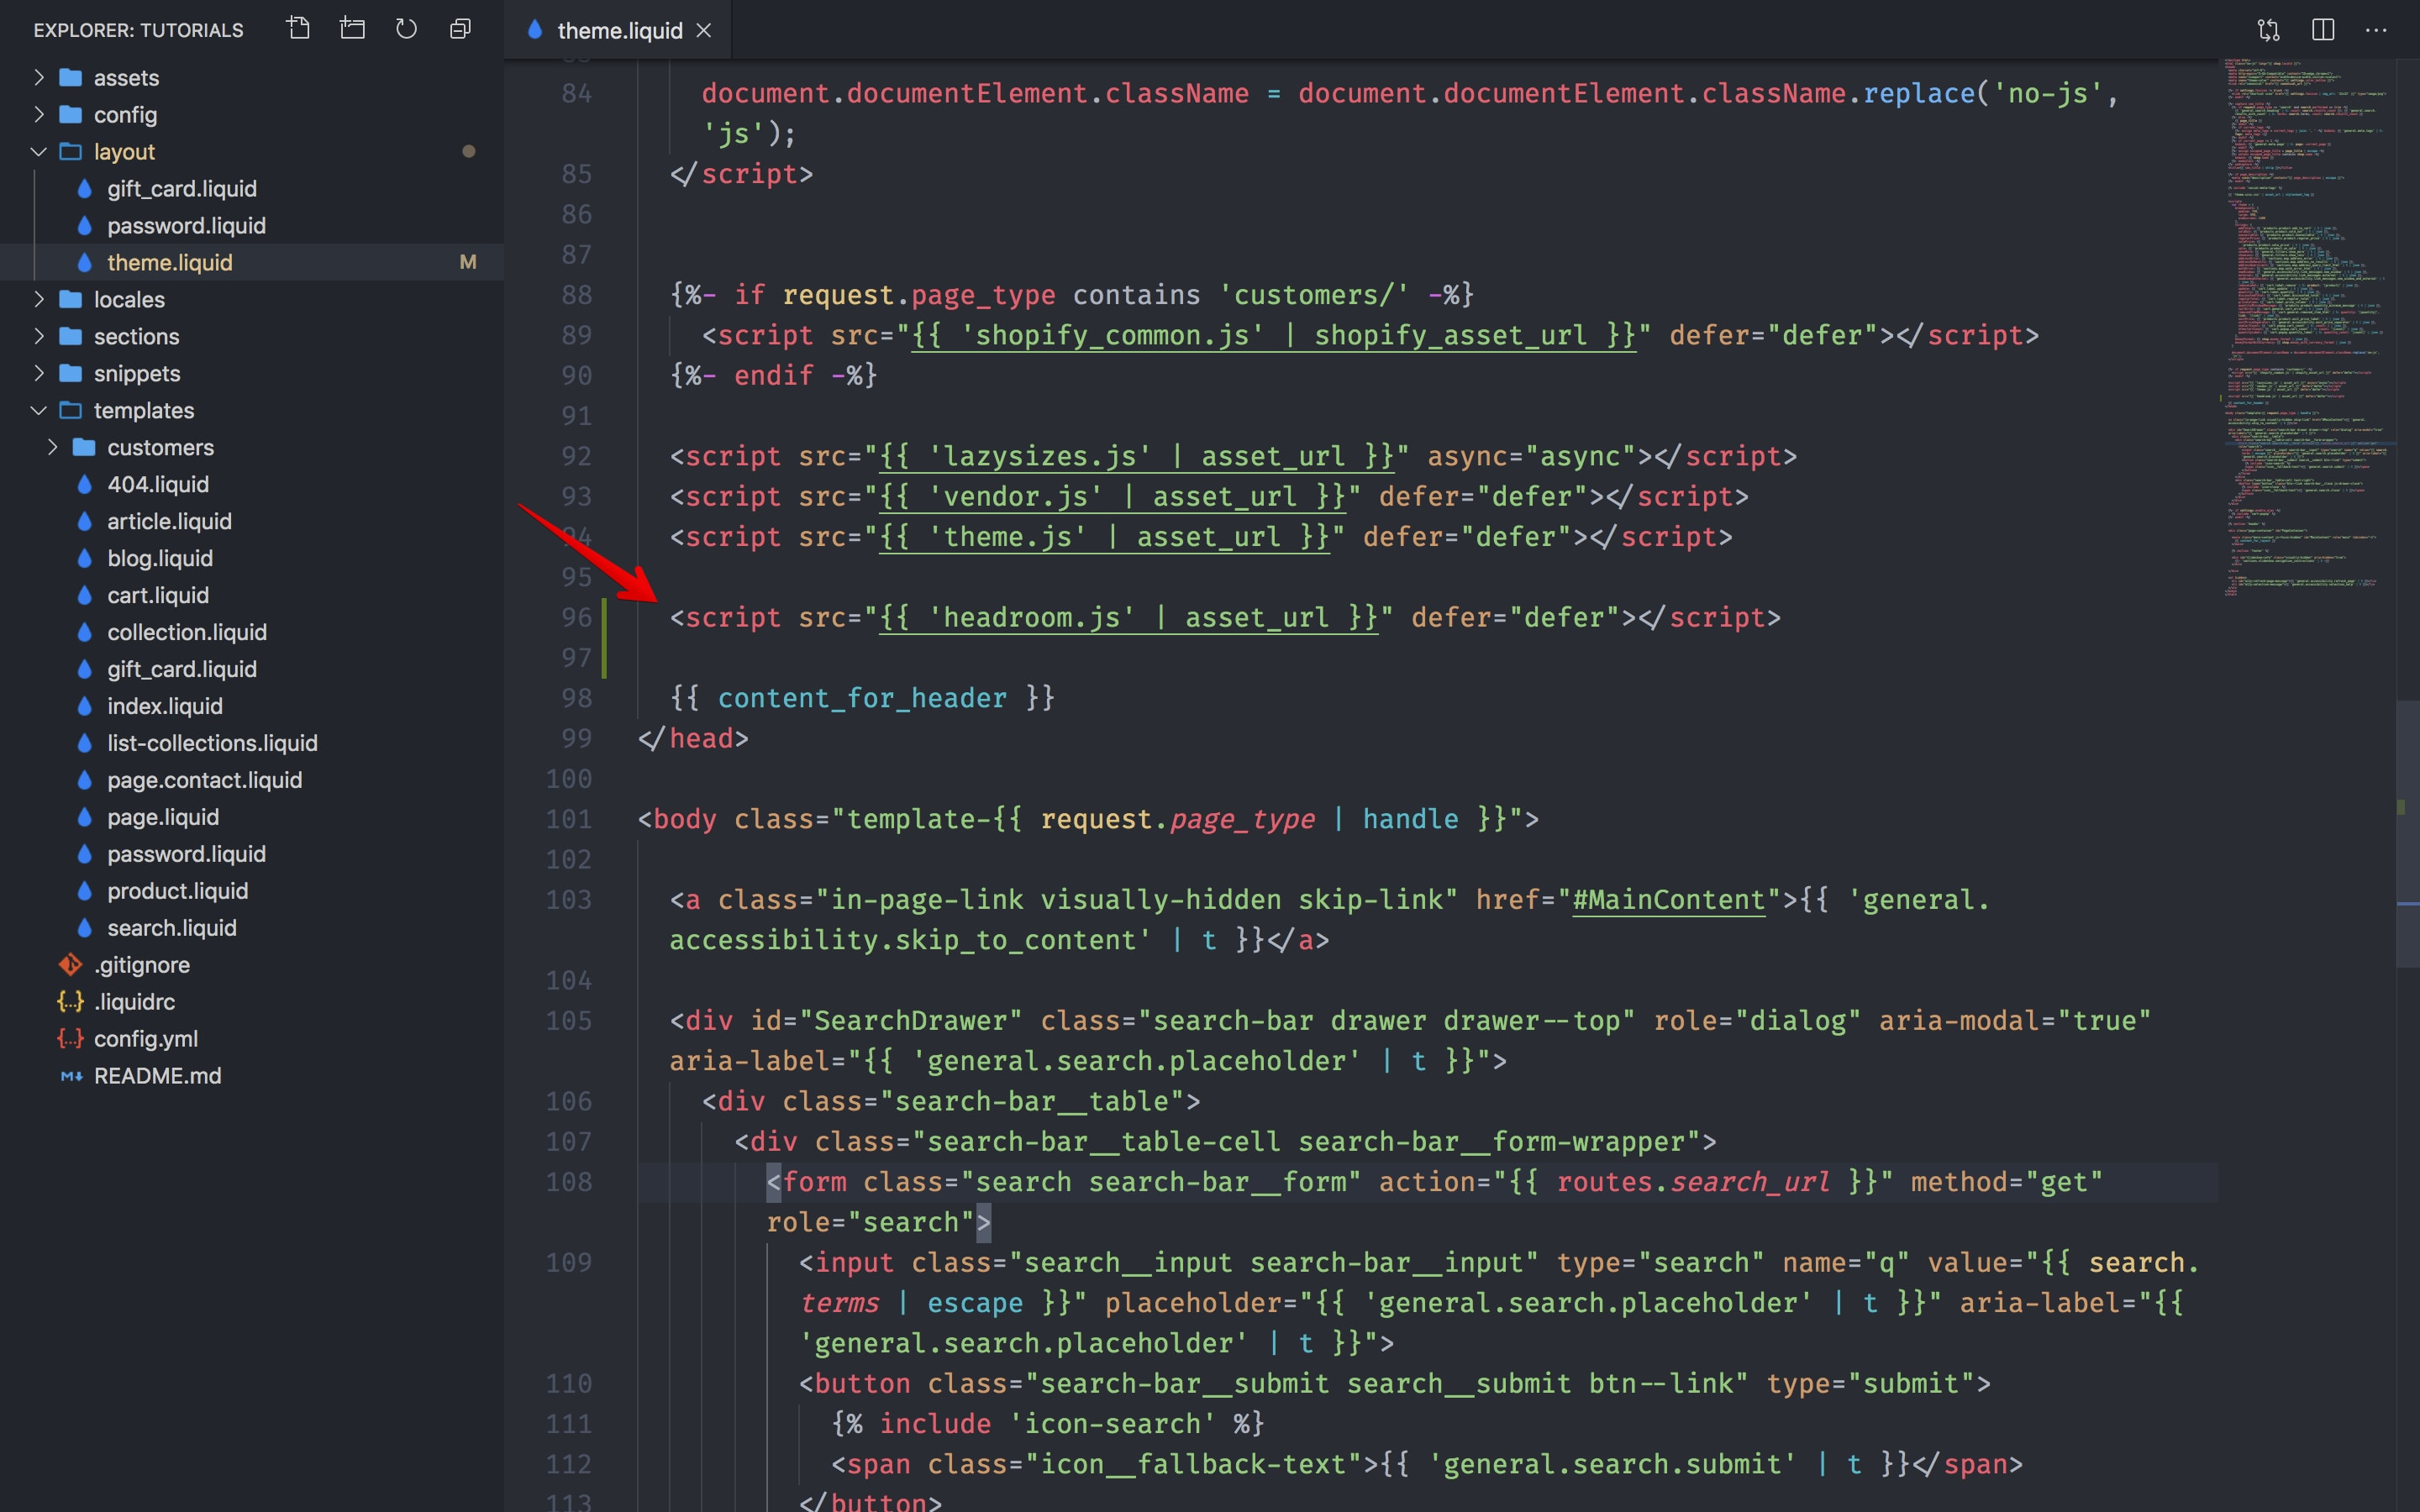 Headroom.js script added to the theme.liquid file.